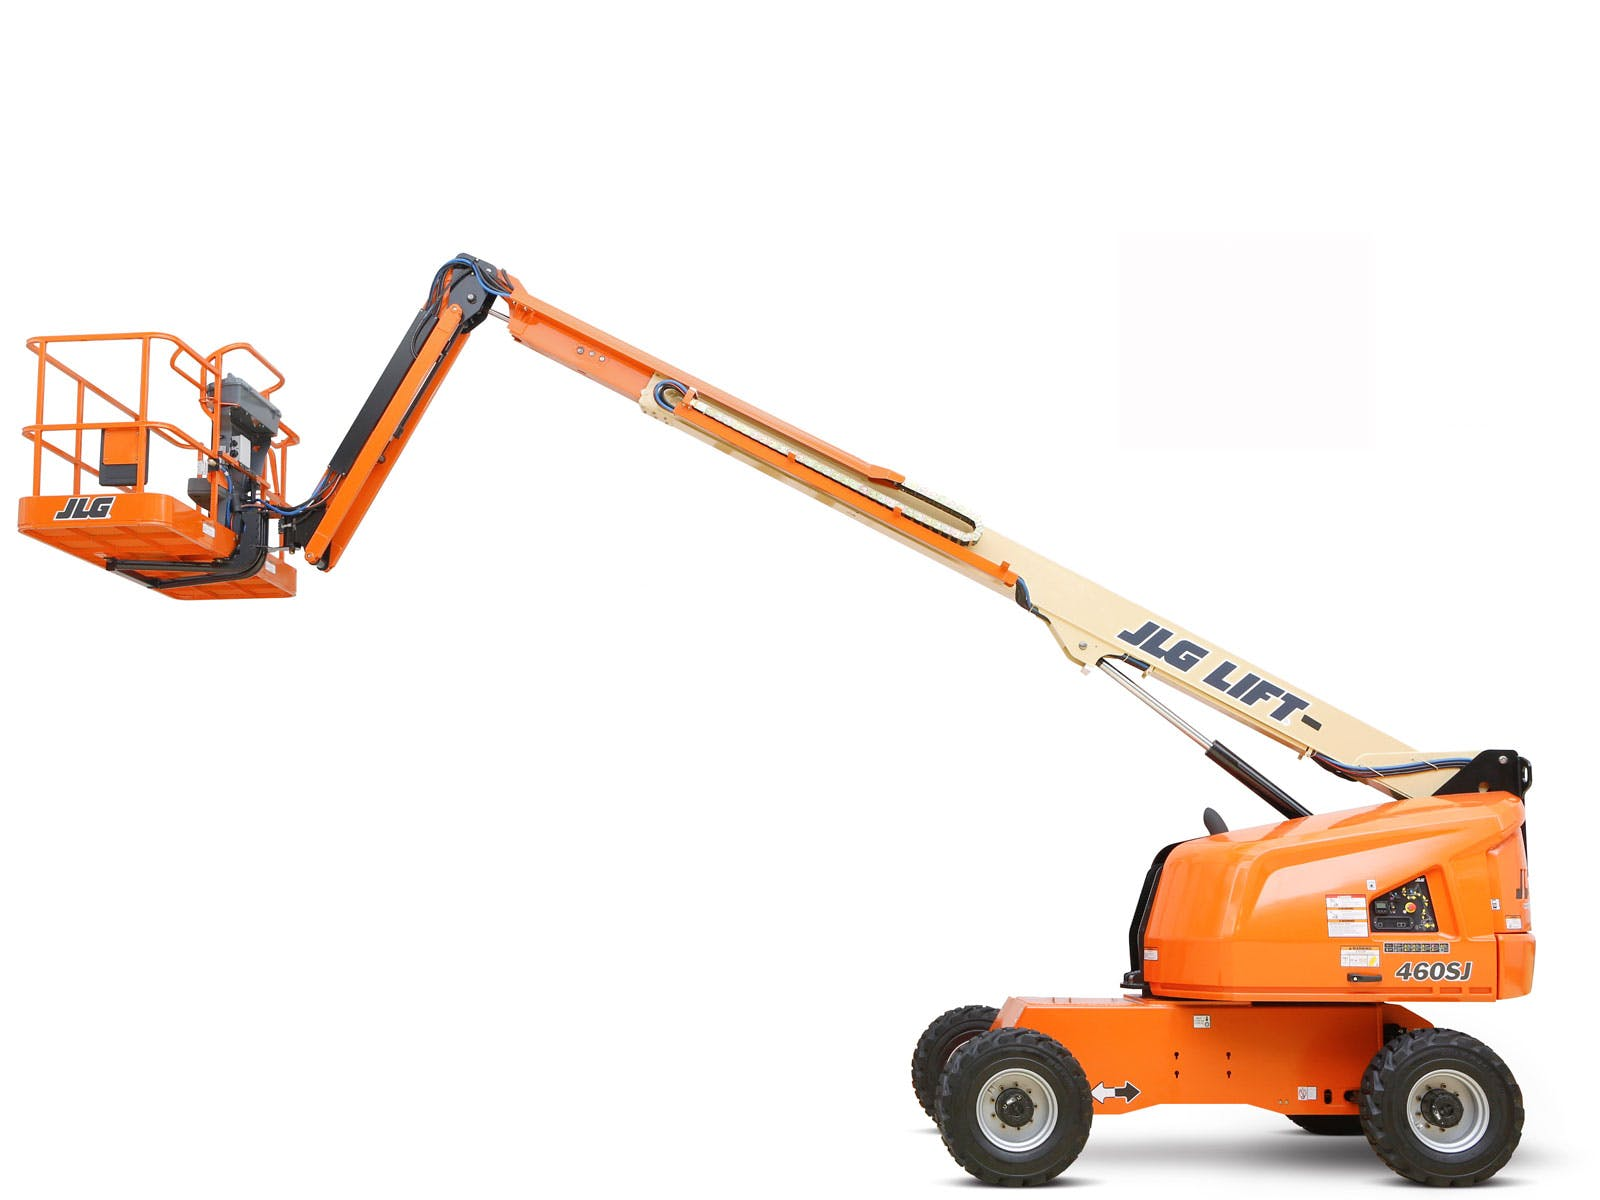 Telescopic 46' Boom Lift 0